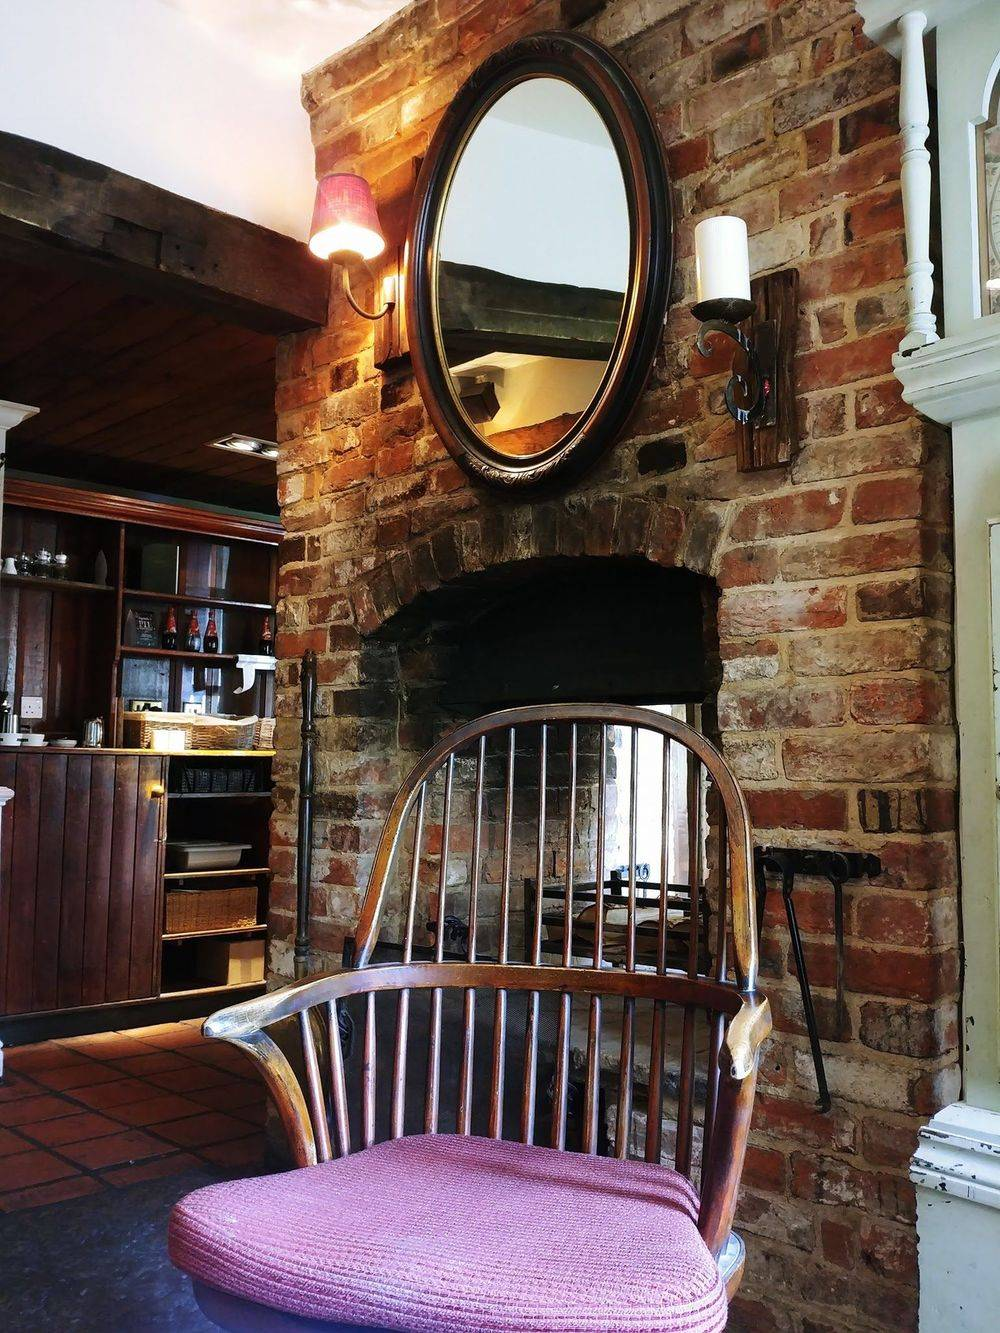 cosy country pubs, fireplace , grandfather clock , old english pubs , vintage inns united kingdom , british & far east traders , friars oak pub hassocks , sussex country pubs, best english pubs